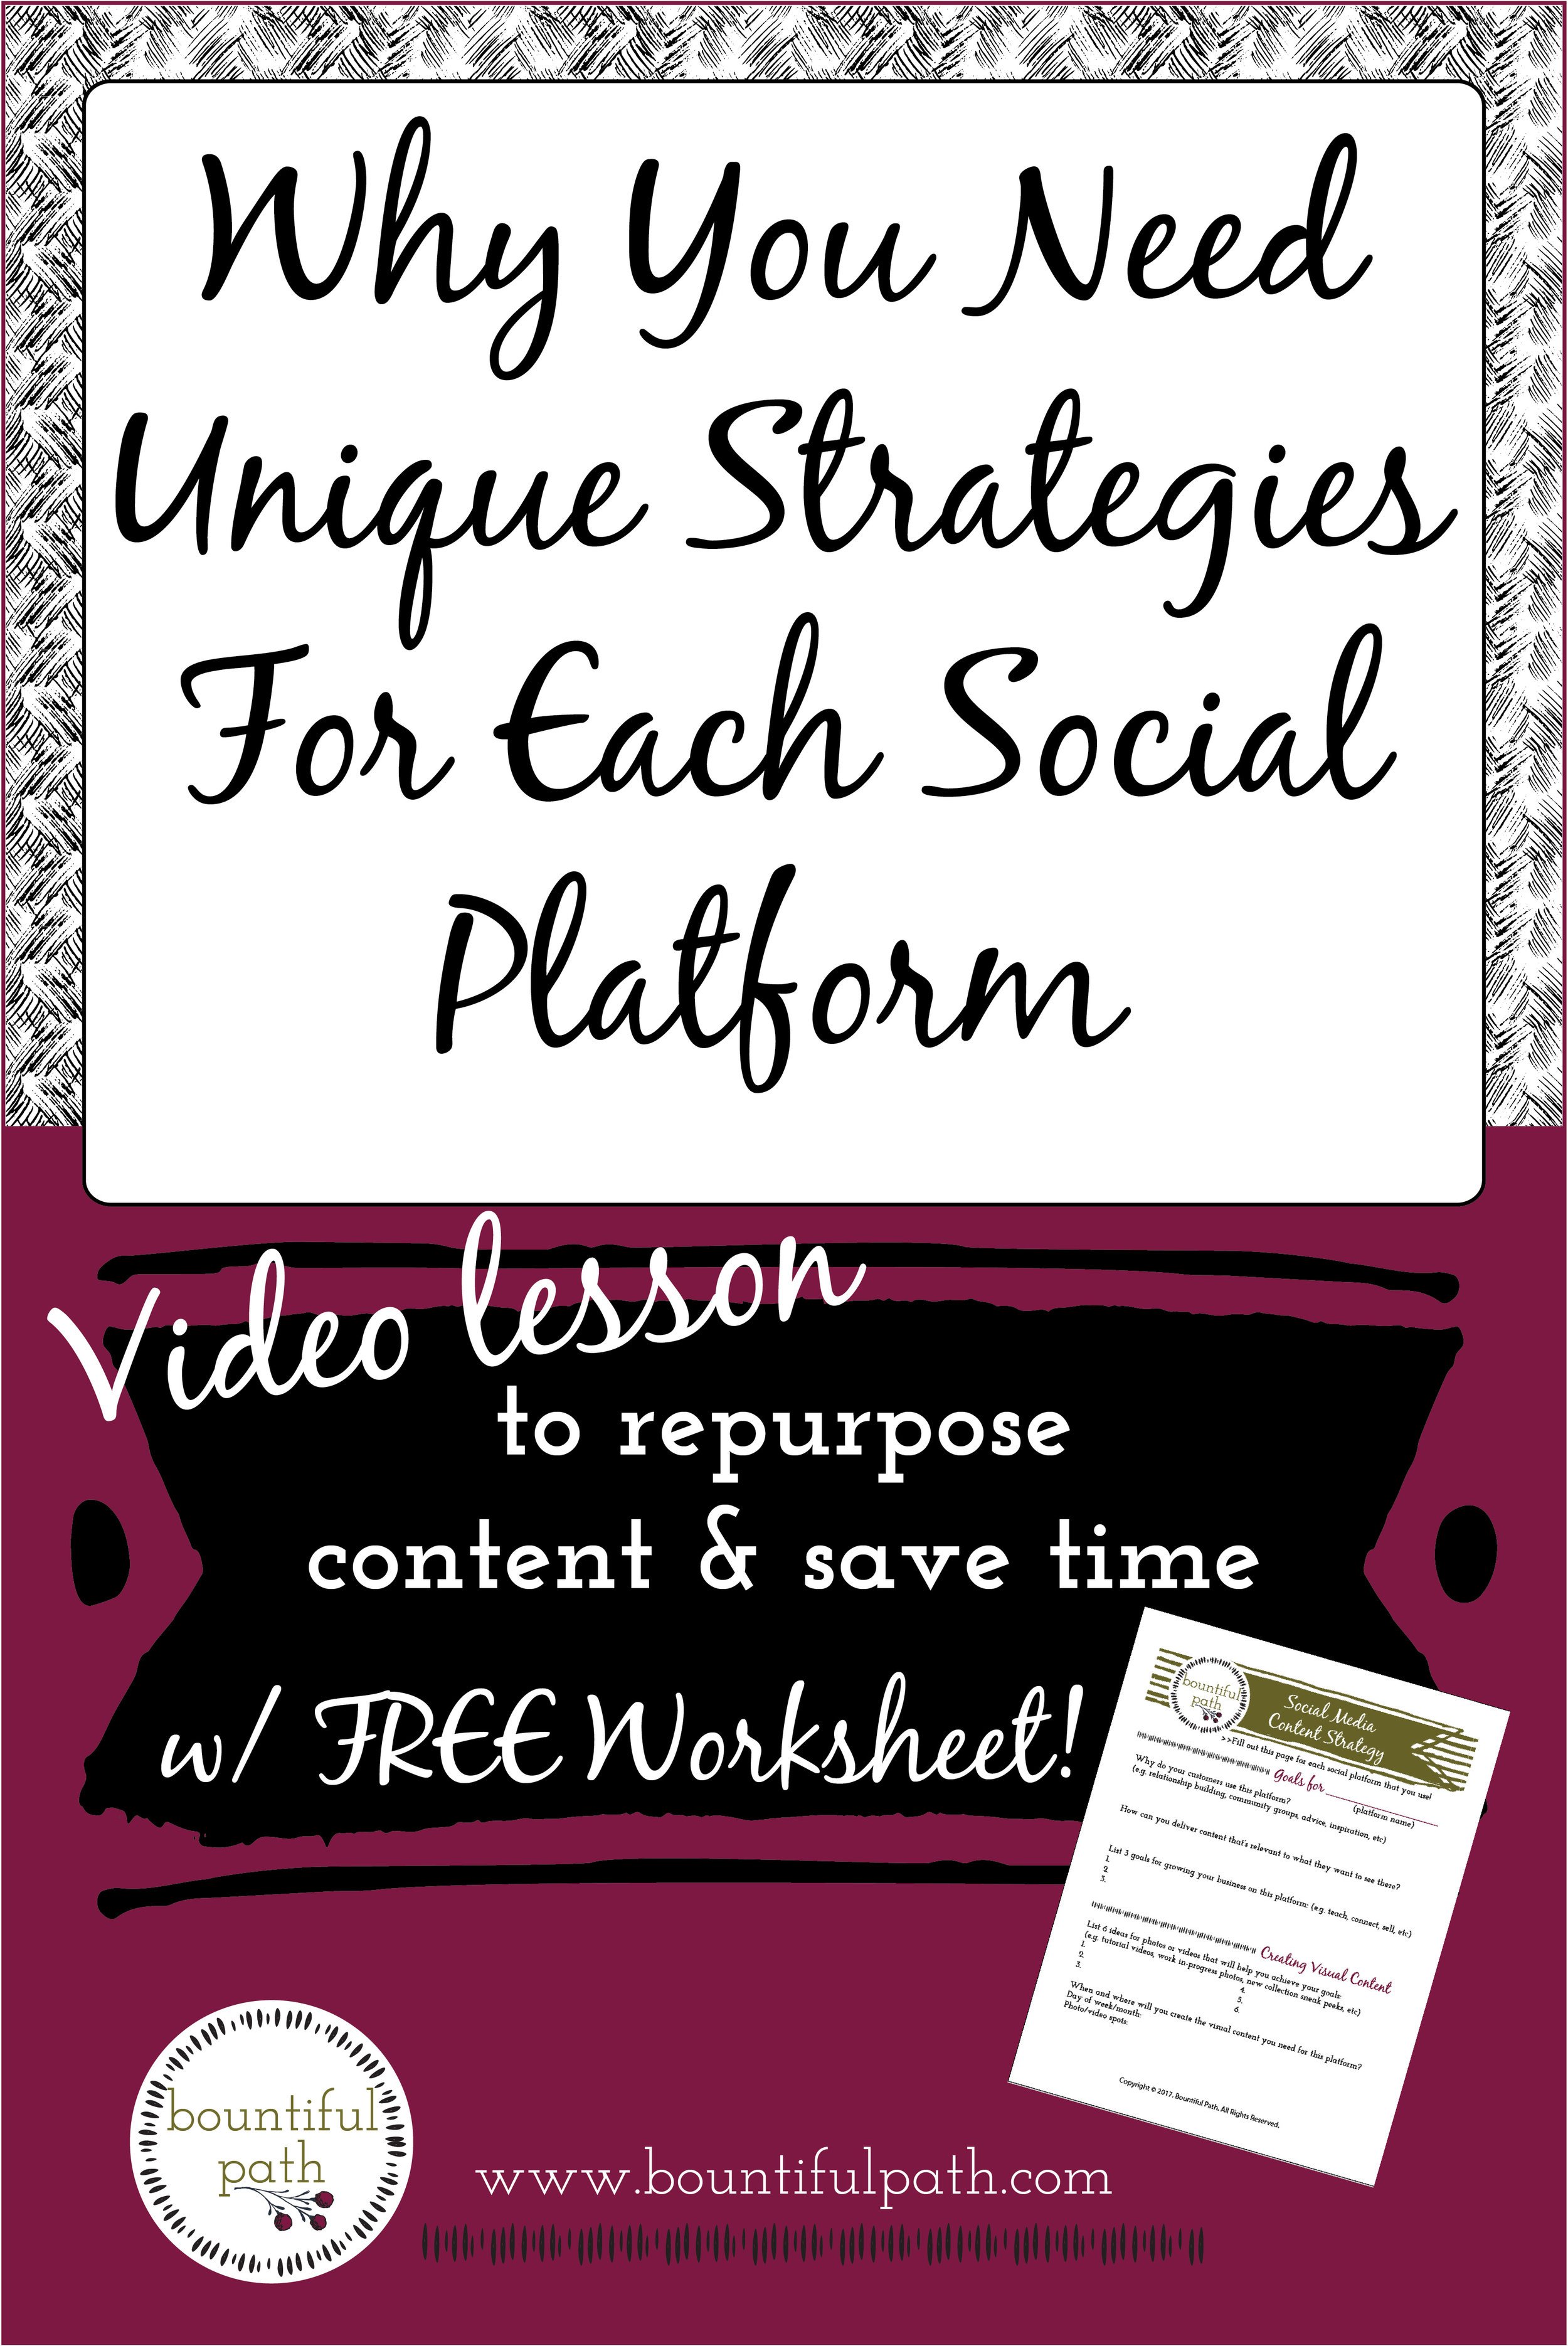 Save time by figuring out how to repurpose content for different social media platforms in order to connect with your audience in different ways. | Bountiful Path for makers to connect visually with their ideal customers through photo & video